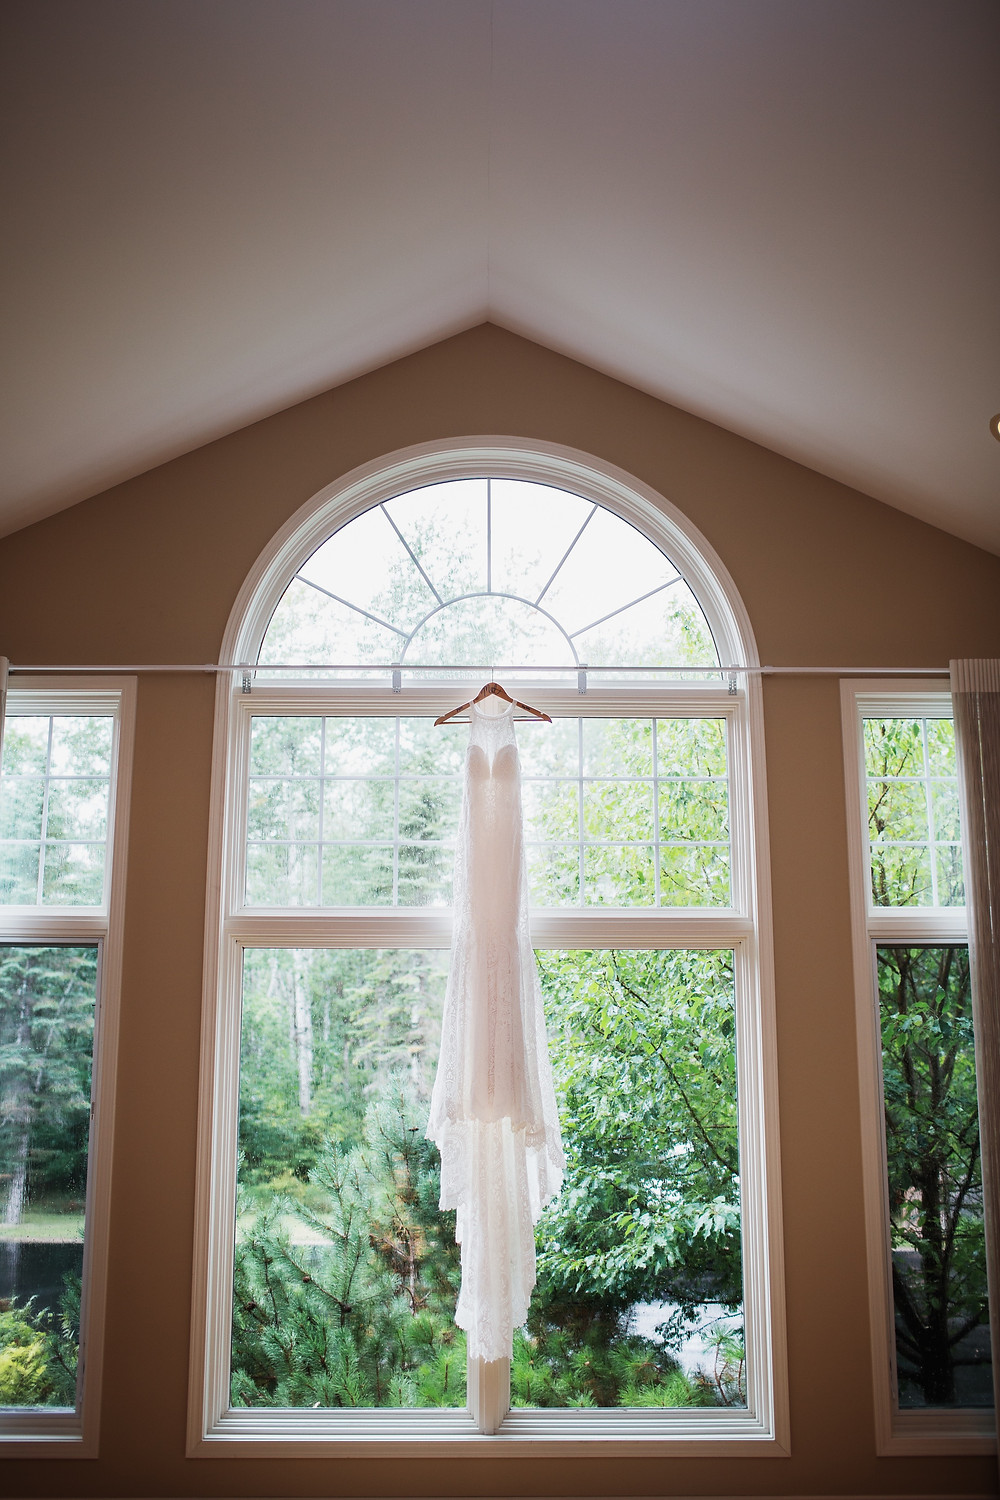 Wilderly bridal gown from LA Collections in Winnipeg, hanging i large living room window.